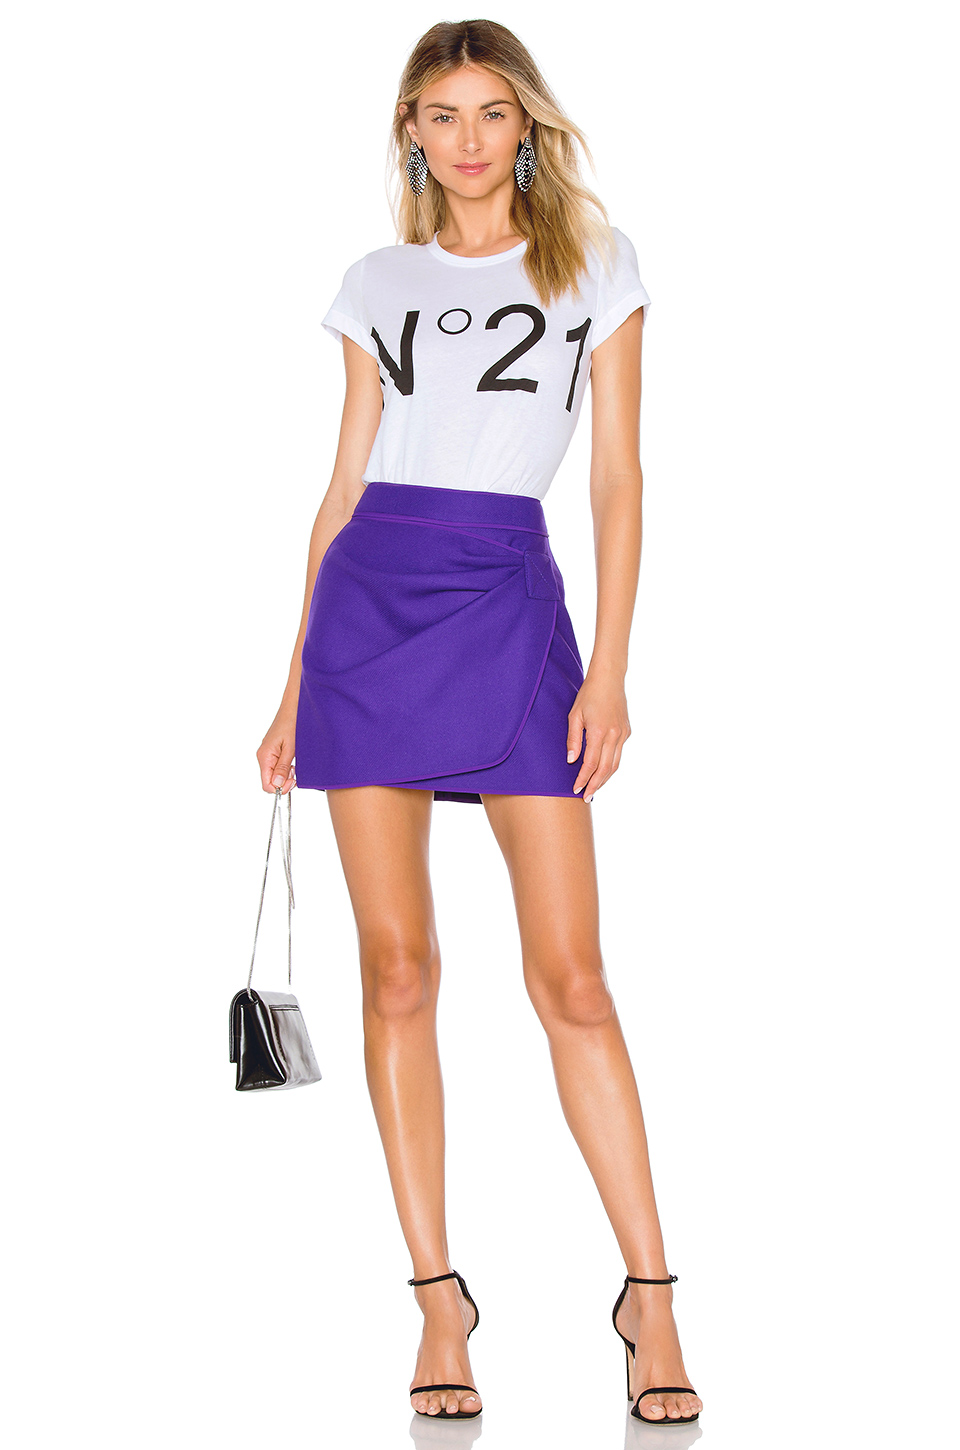 No. 21 Ruched Mini Skirt